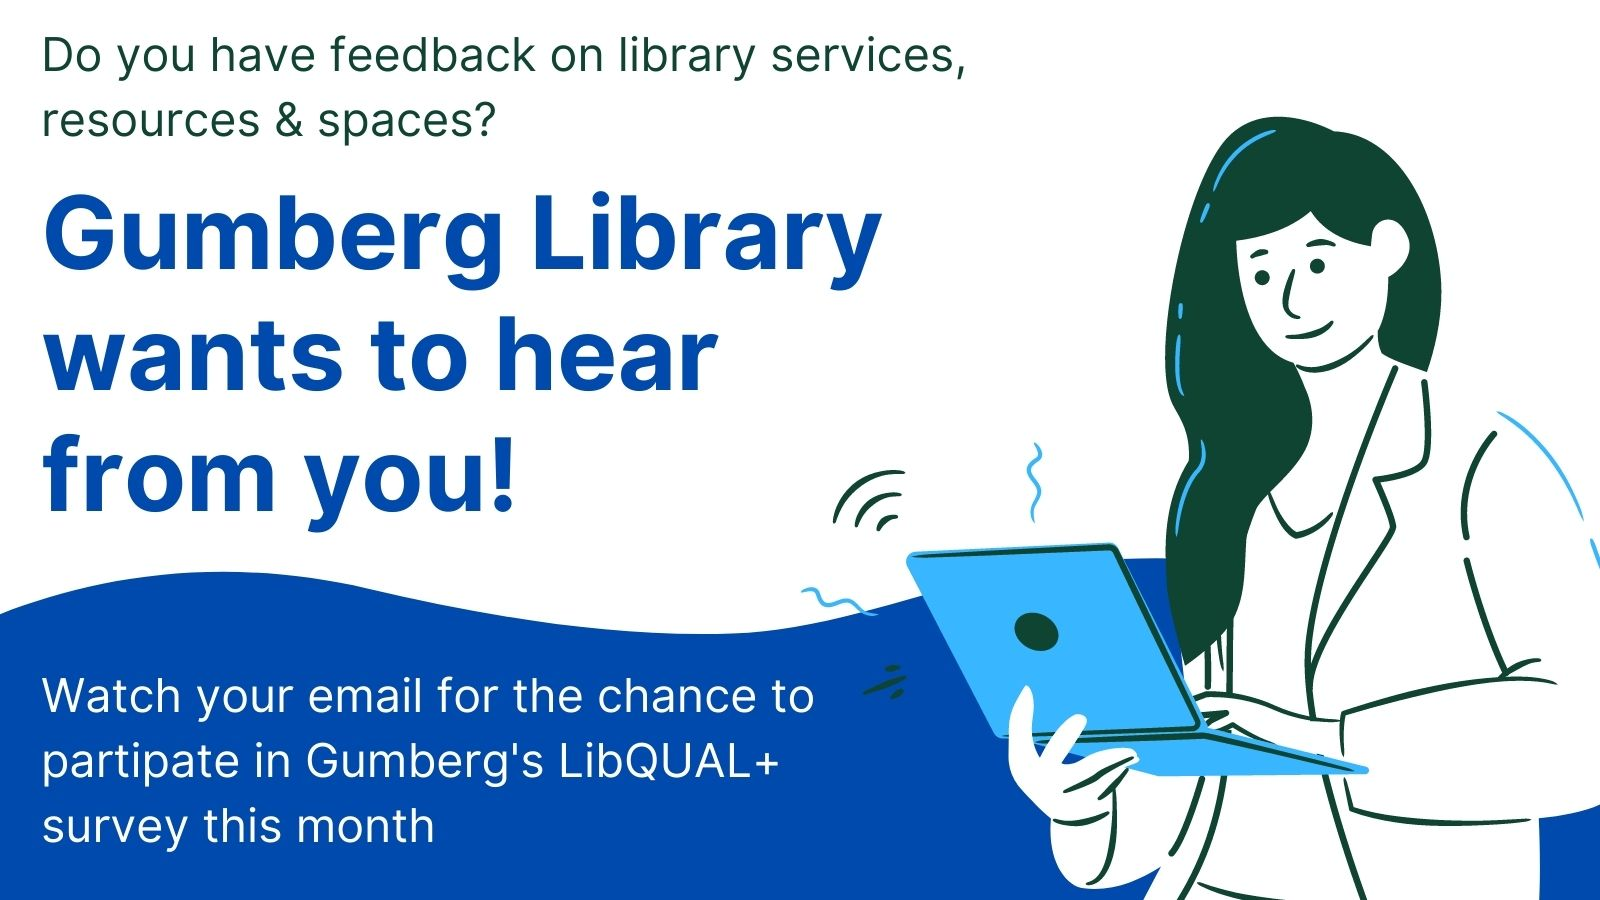 Do you have feedback on library services, resources & spaces? Gumberg Library wants to hear from you!